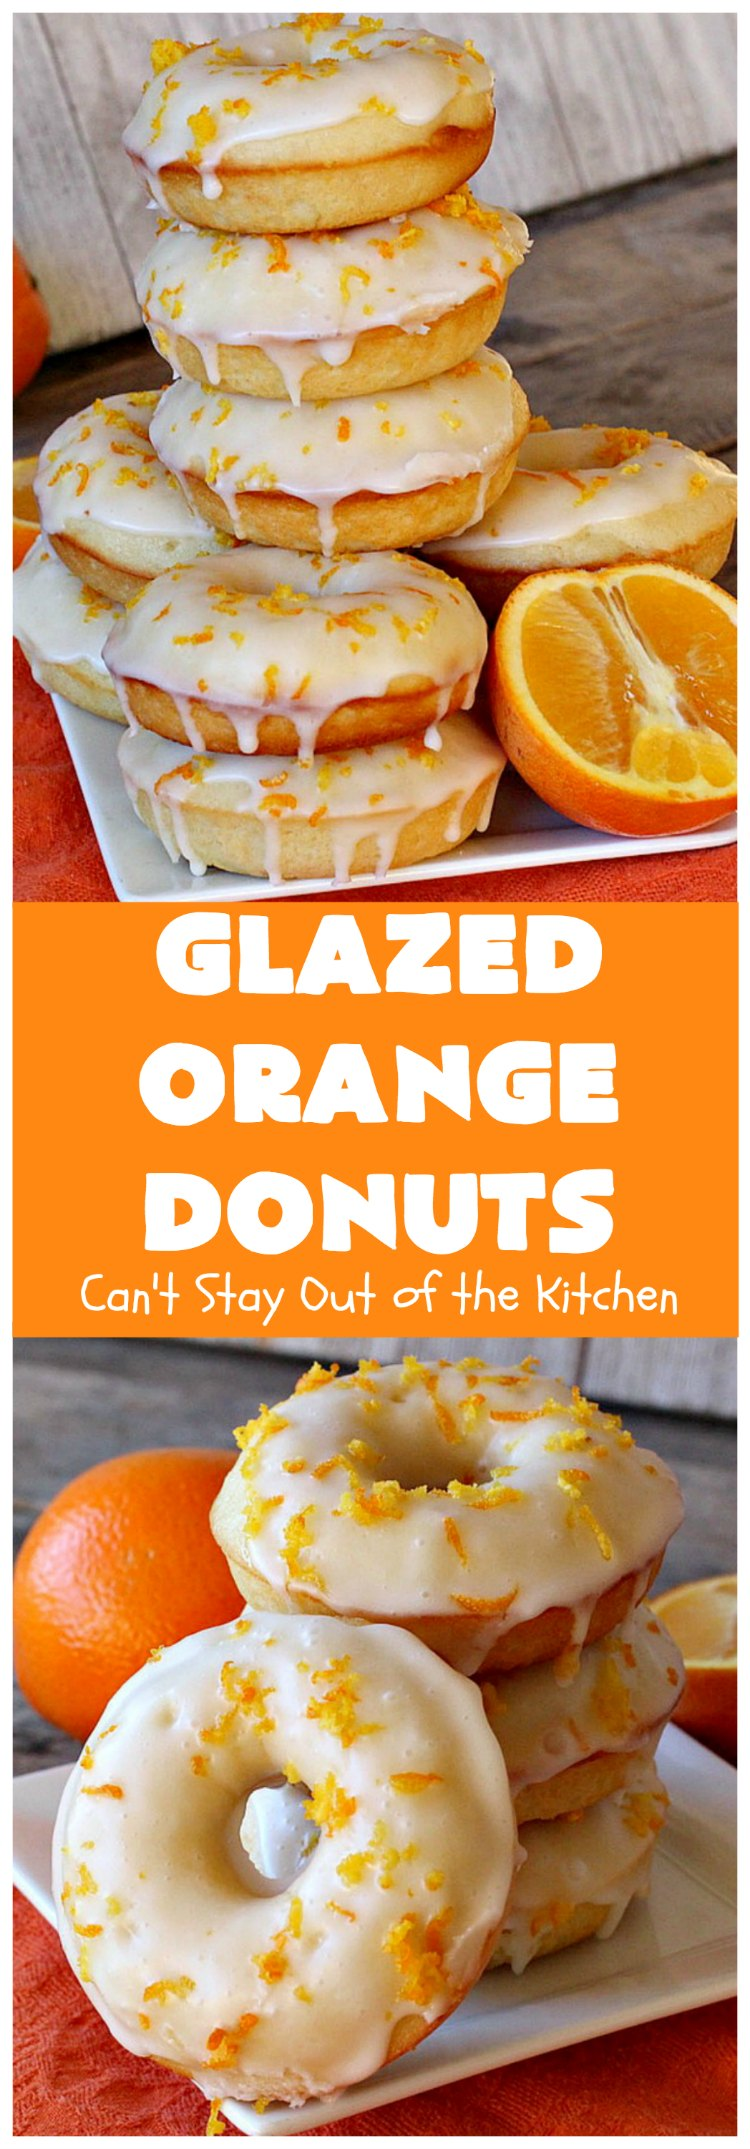 Glazed Orange Donuts | Can't Stay Out of the Kitchen